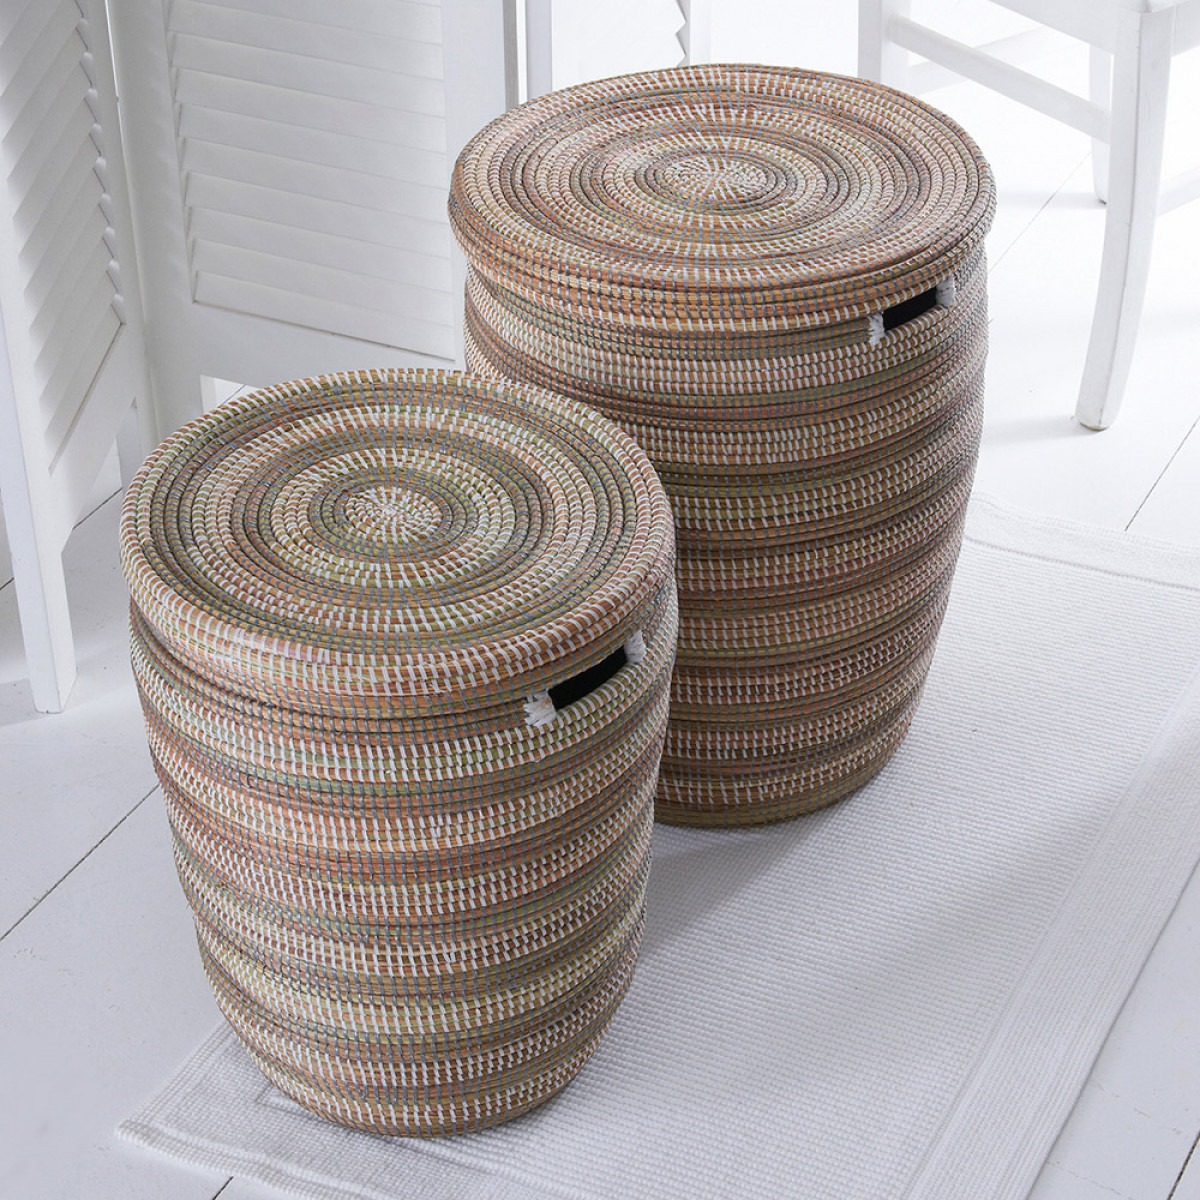 Hand woven laundry baskets